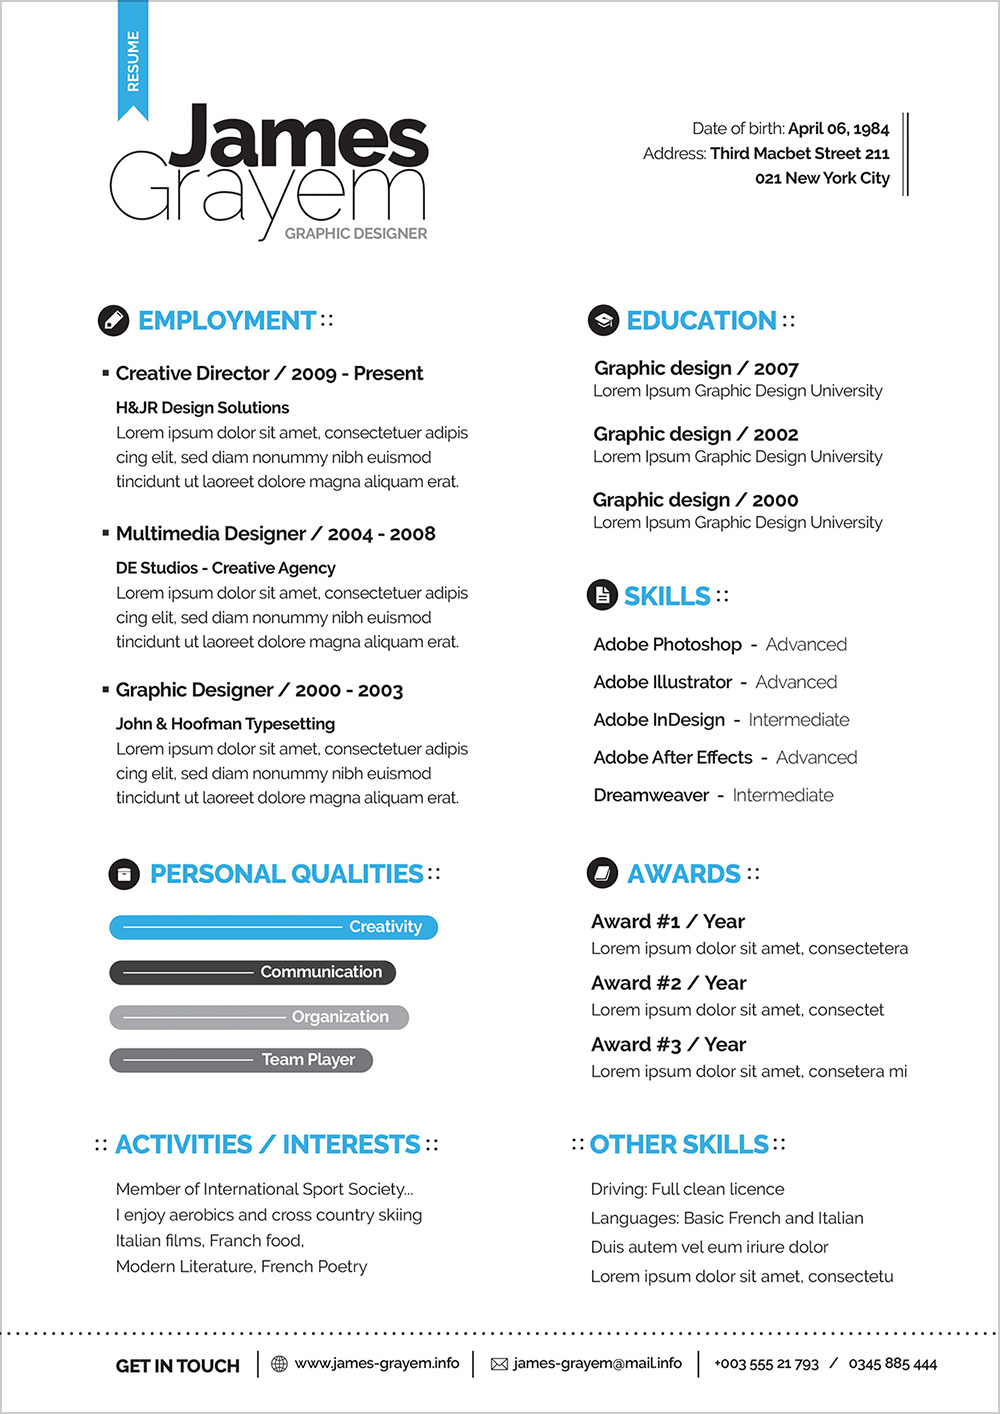 Free-Professional-Resume-CV-Template-&-Cover-Letter-for-Creative-Director-4